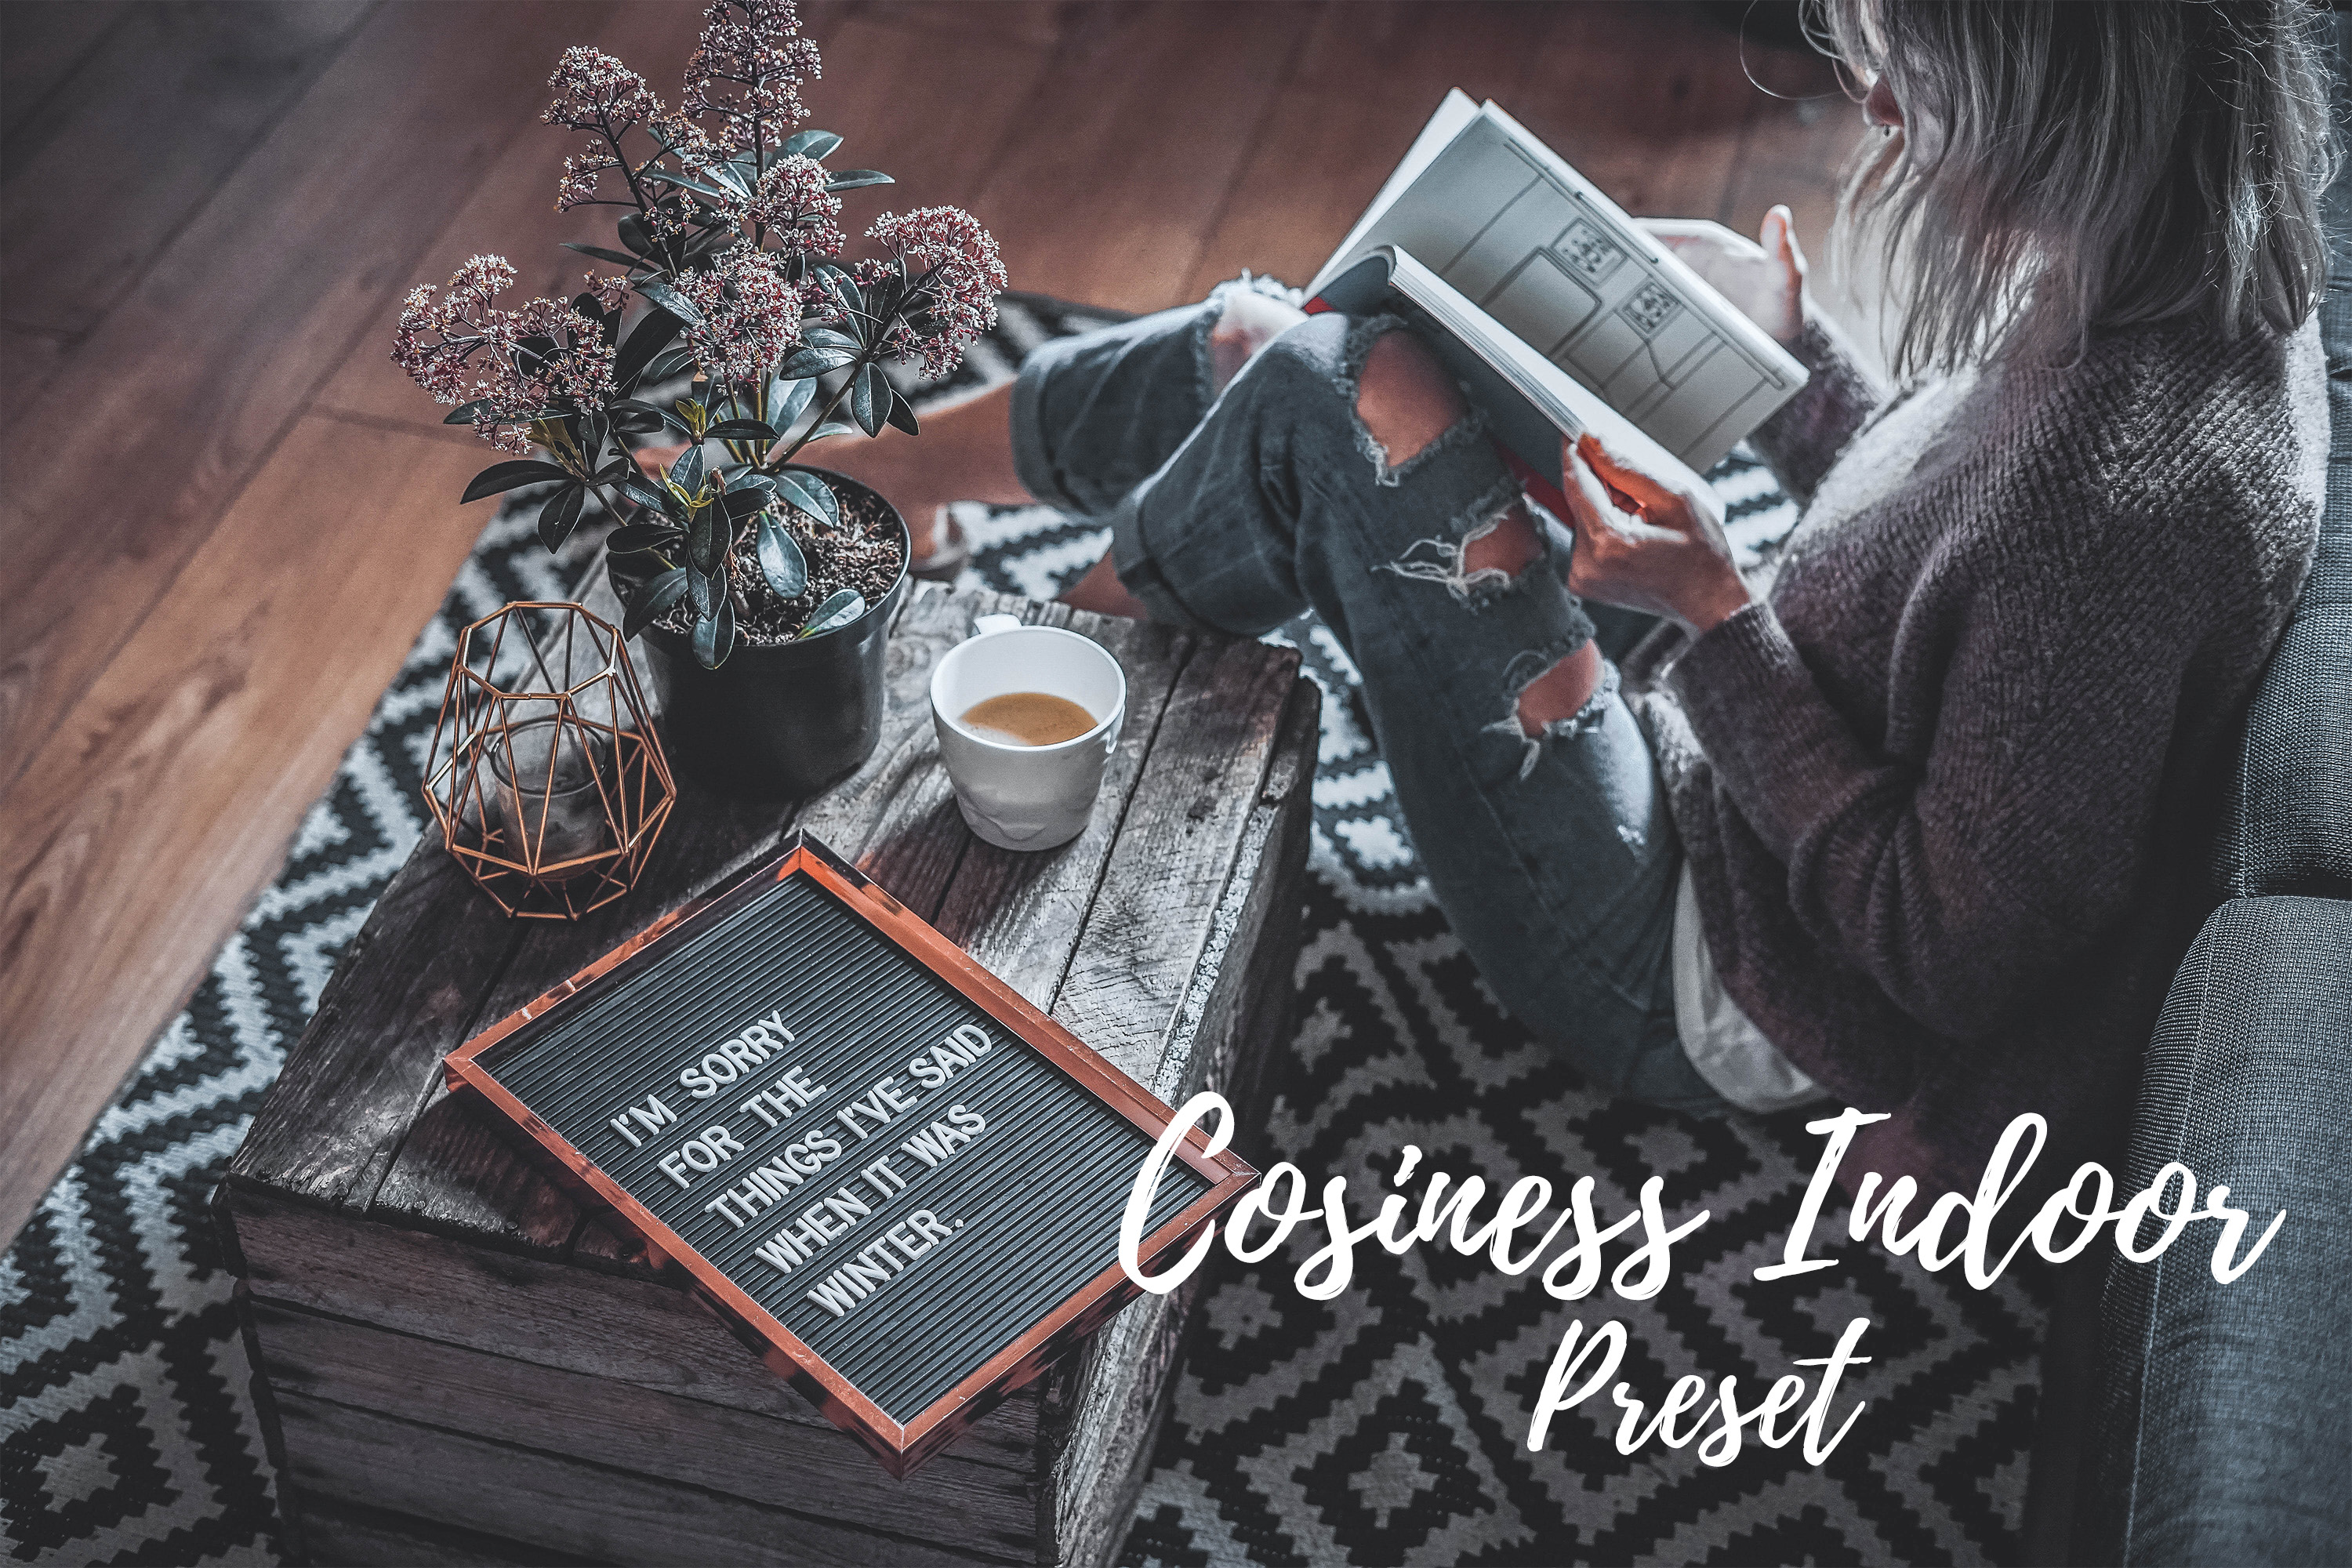 Download Free Lightroom Preset Cosiness Indoor Graphic By Mybeautifulfiles for Cricut Explore, Silhouette and other cutting machines.